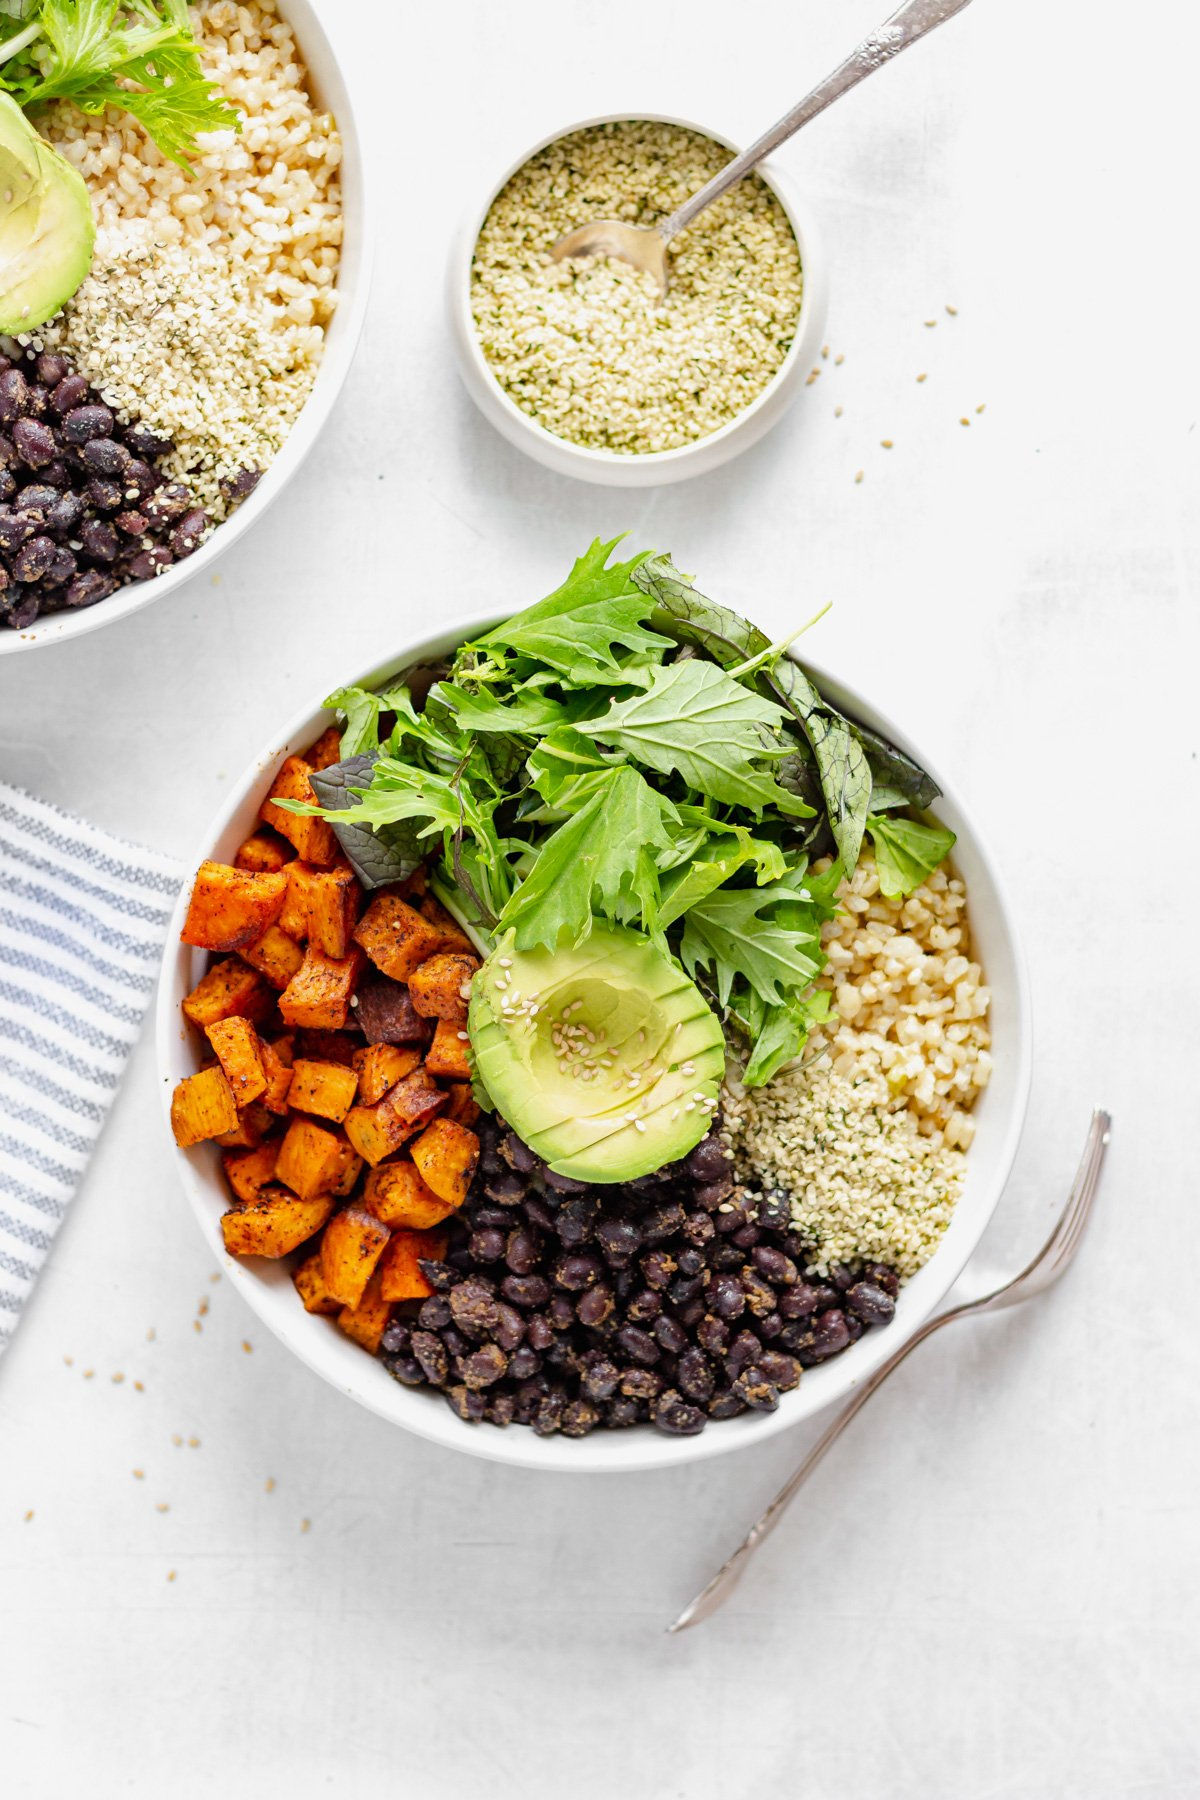 sweet potato, black beans, brown rice, leafy greens, and avocado in a buddha bowl with hemp seeds on the side, from overhead